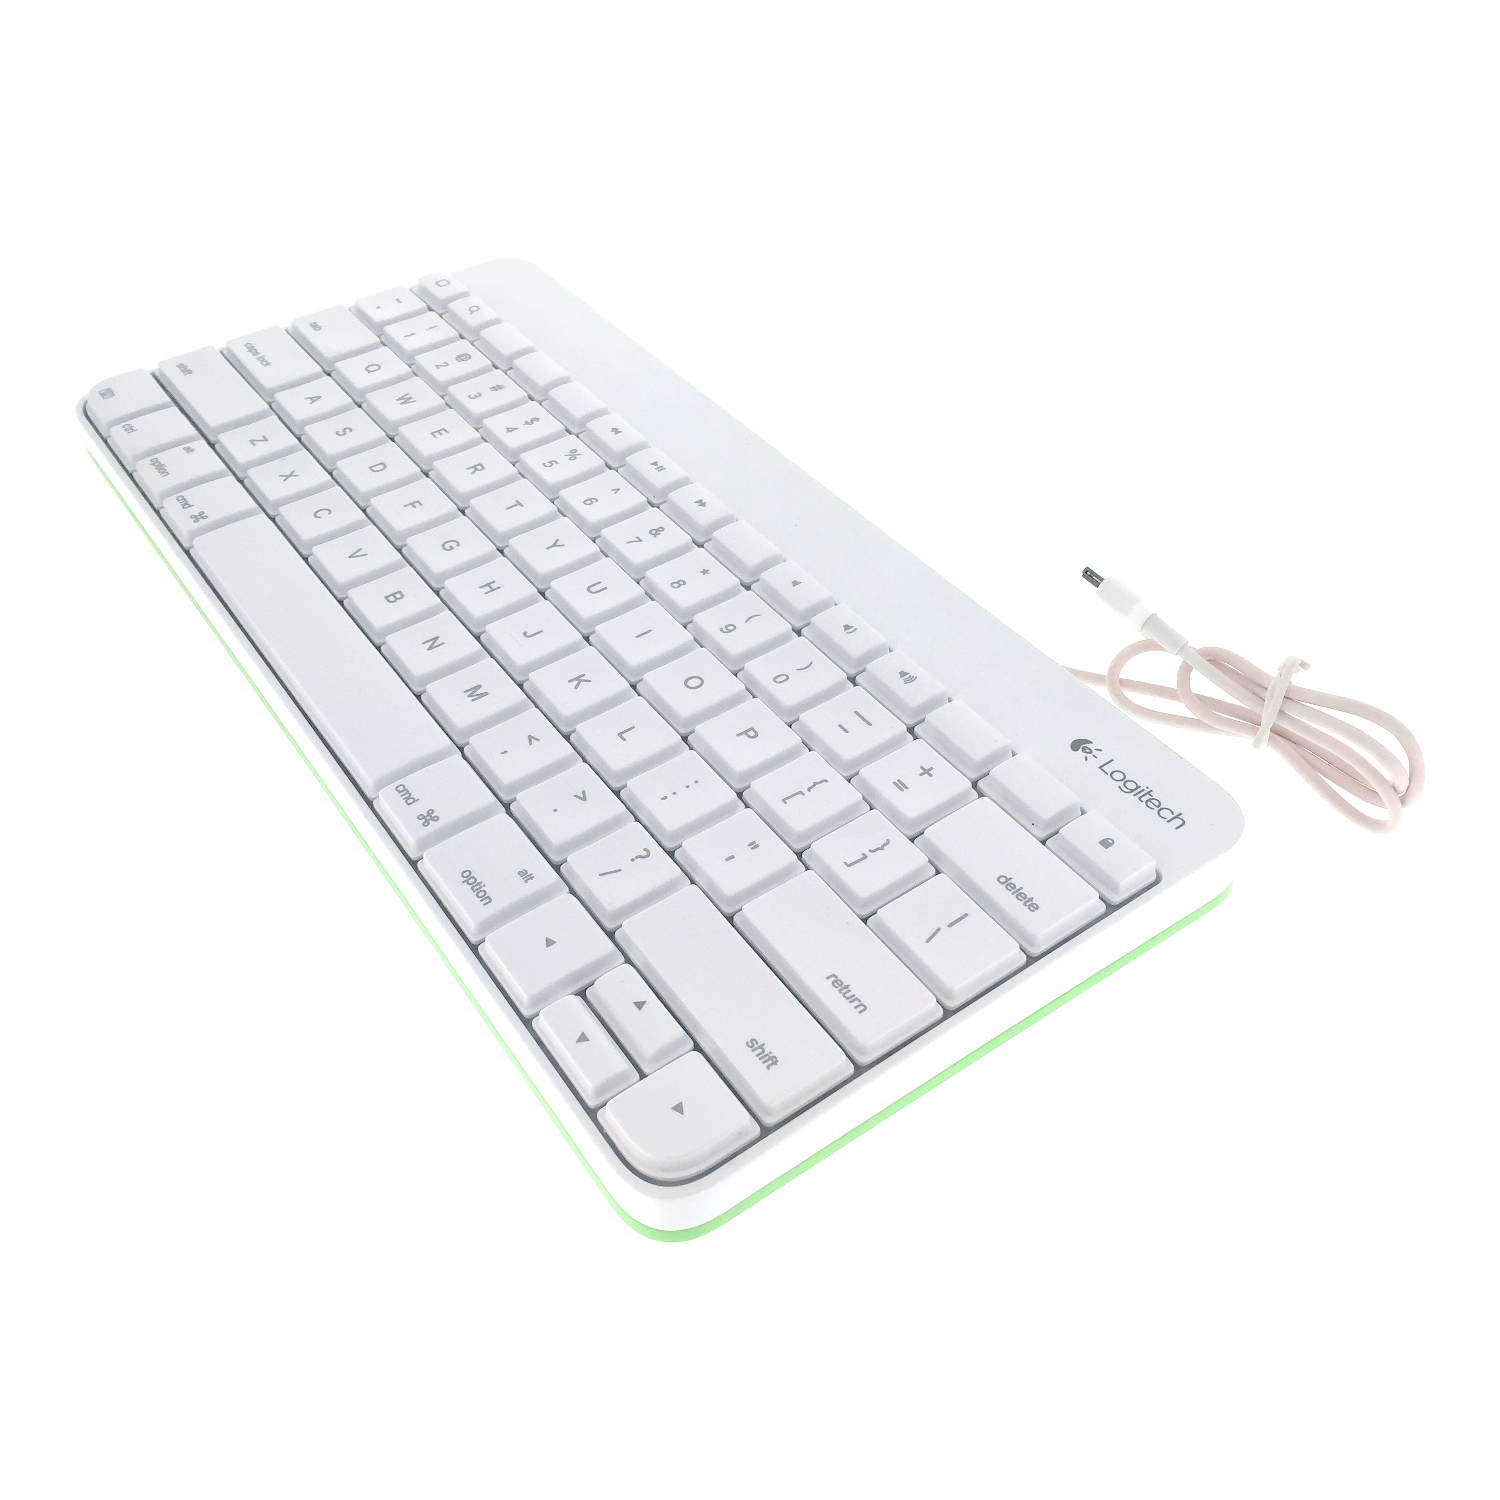 Details about Logitech Wired Keyboard for Apple iPad 1 2 3 with 30-Pin  Connector White & Green